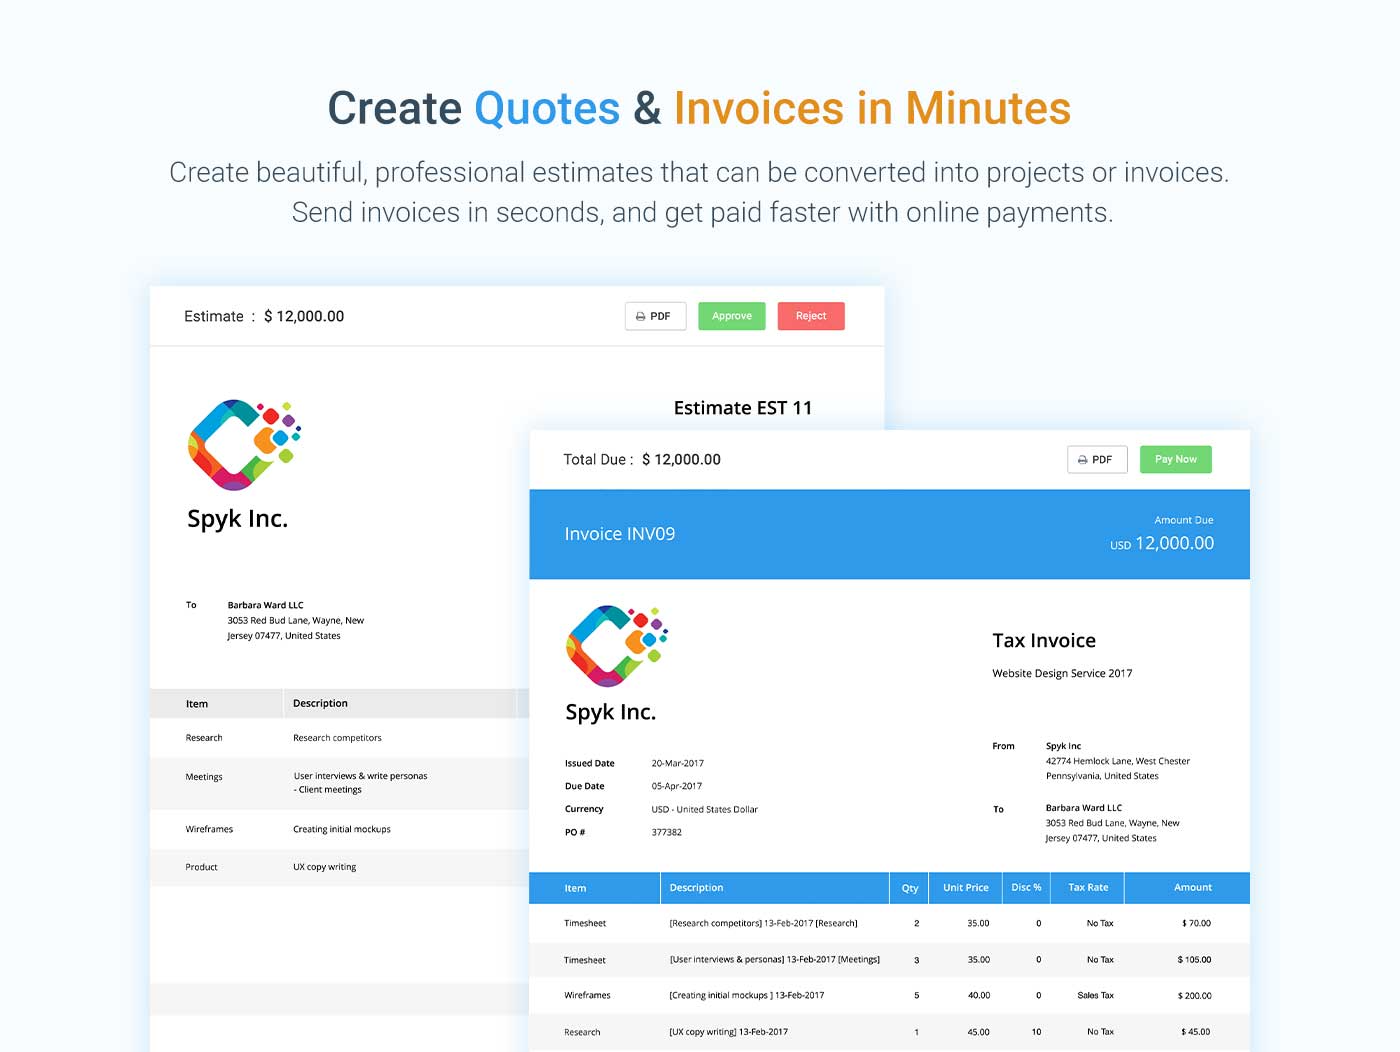 Send online quotes & invoices in minutes.